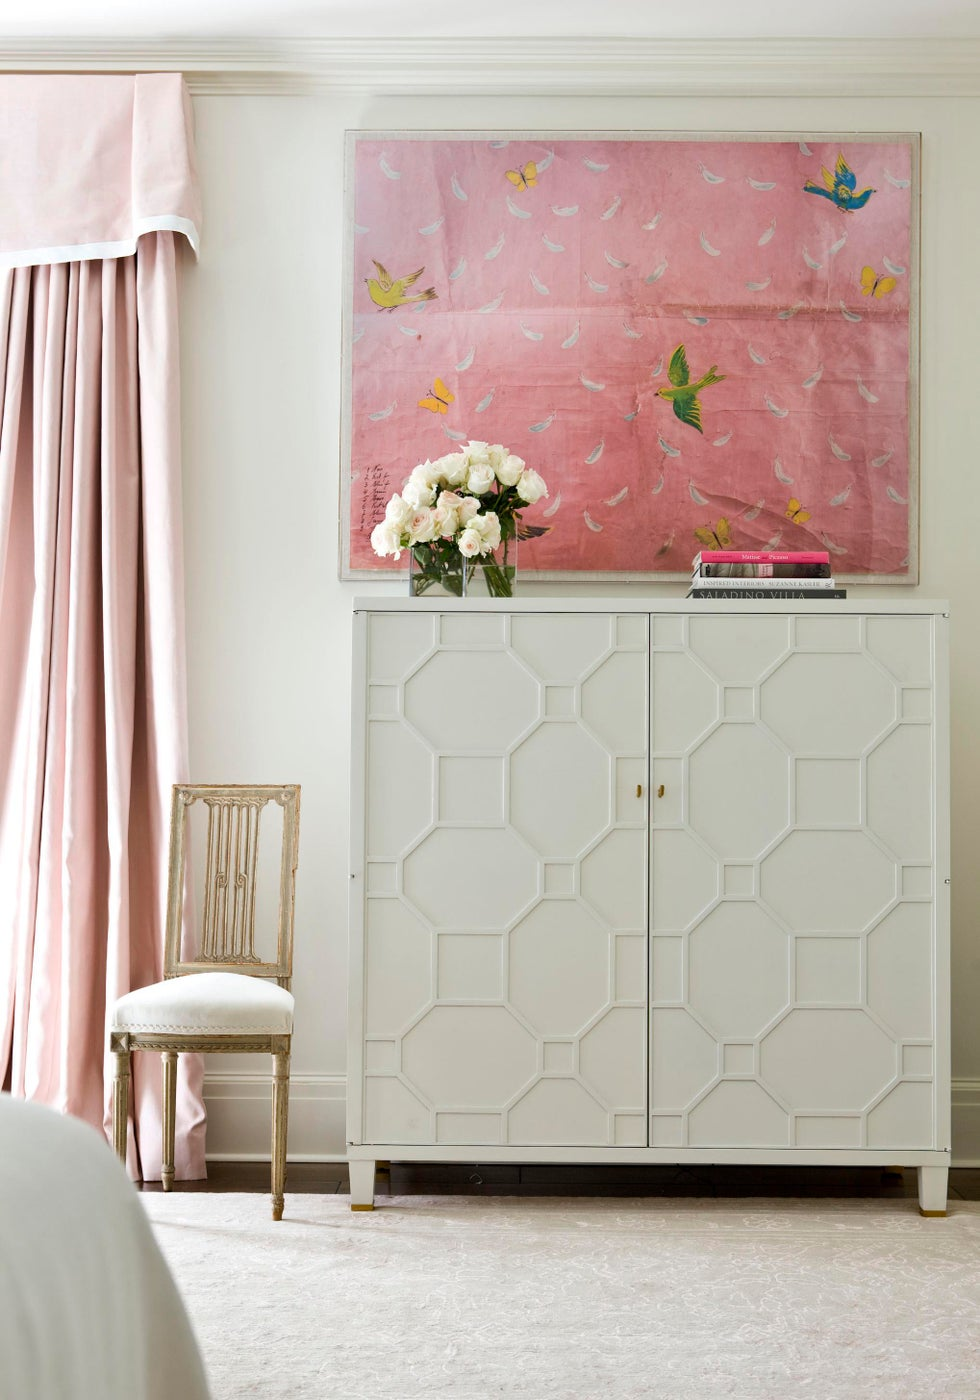 At Home bedroom detail in shades of pink